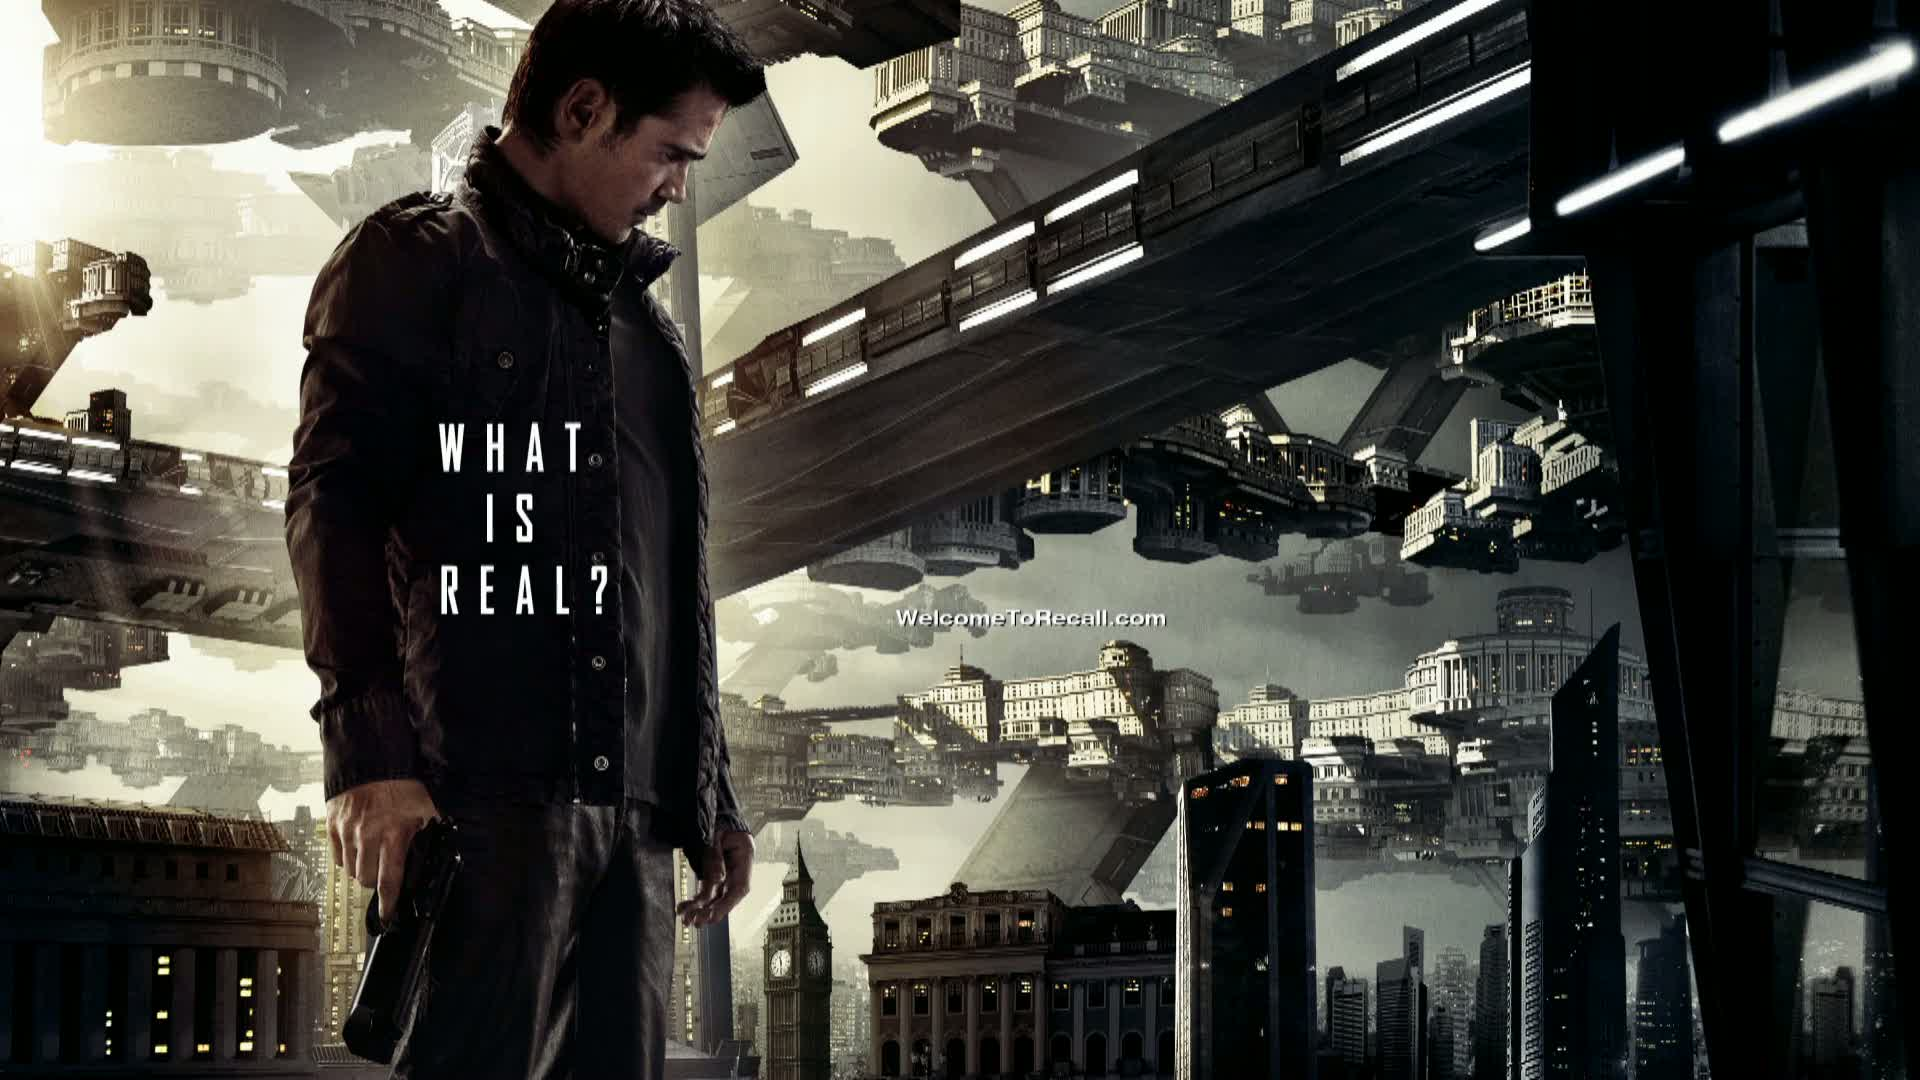 Total Recall Poster - Colin Farrell - Jessica Biel & Kate Beckinsale - Total Recall (2012) Movie Review!